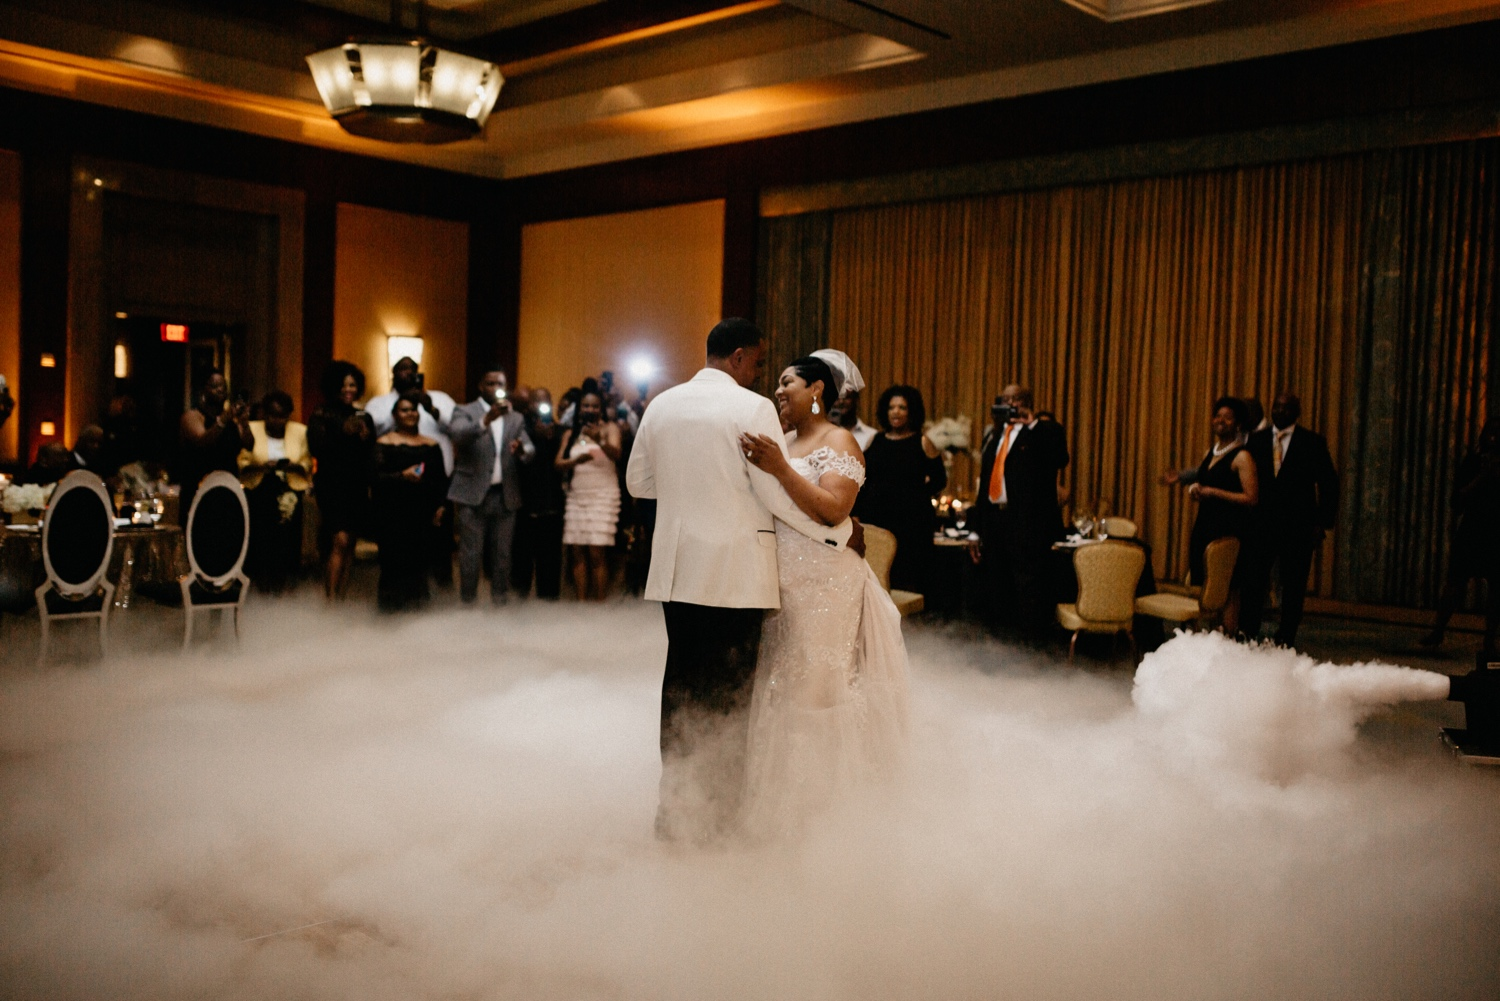 68_Ritz-carlton-wedding_charlotteNC_charlotteweddingphotographer.jpg